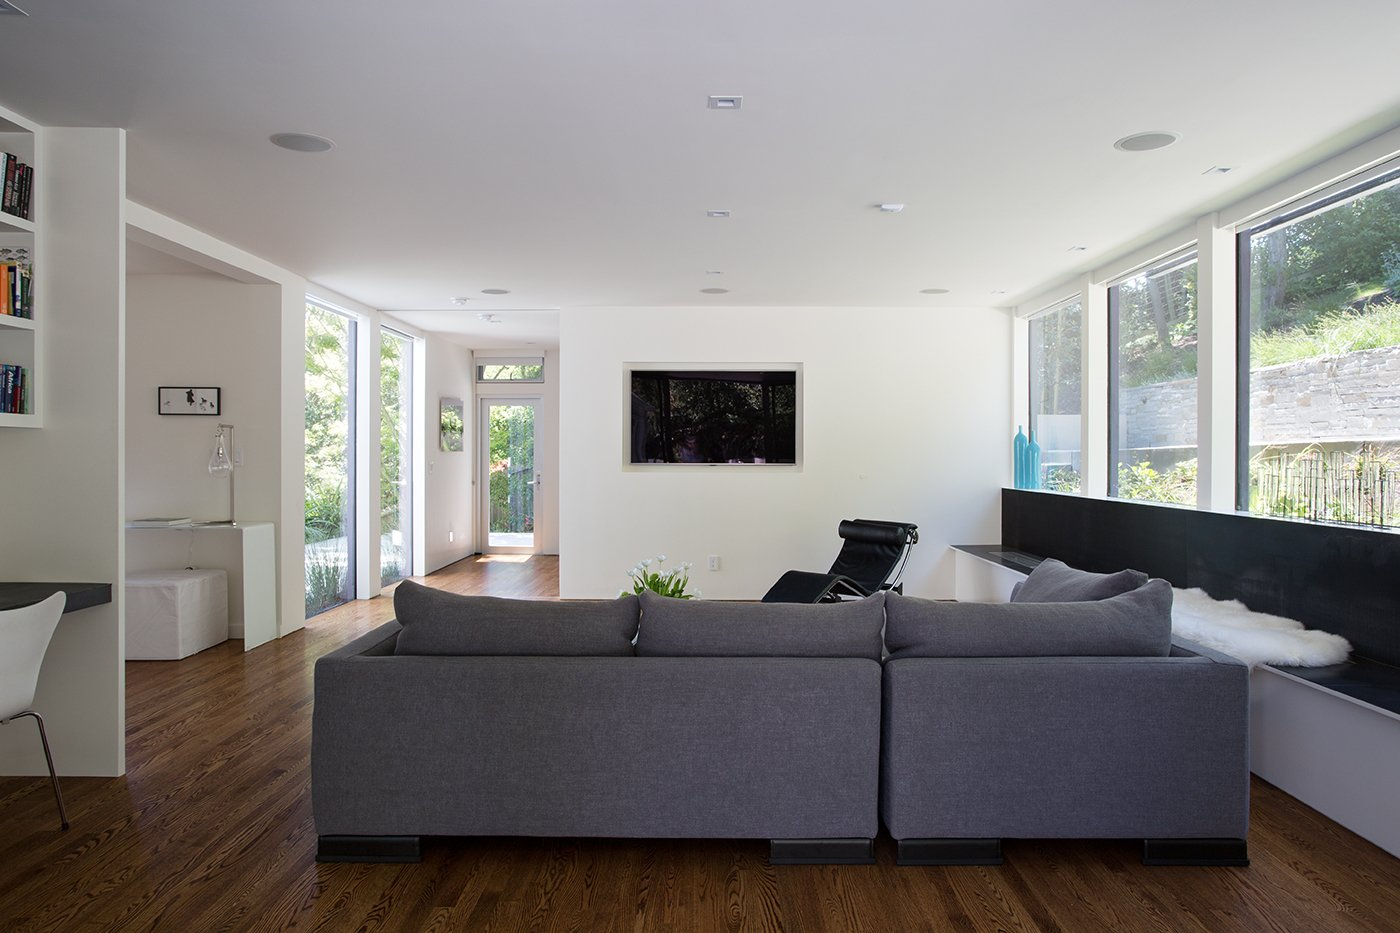 Minimal Modern Addition  Sebastian and Tanja DiGrande's quest for natural light and open, modern design led them to Klopf Architecture in San Francisco. Working hand-in-hand with homeowner/designer Tanja DiGrande, Klopf collaborated on a modern addition to the rear of a traditional-style home. The idea was to depart from the original style completely to draw a distinction between the original house and any later additions, as well as observe a very minimal, clean, gallery-like modern style against which changing daylight, art, furniture, and of course the people provide the color and motion.  With its dark gray stuccoed walls, dark steel railing, and floor-to-ceiling windows, the exterior of the addition is at the same time an open, modern box as well as a receding volume that acts almost as a backdrop for the house, receding visually out of respect for the original home. From the interior, windows bring in nature and views from all around the lush property. They also allow views of the original house. Up on the roof deck the views magnify. The owners use a boom and crank to bring up food and drinks when entertaining!  Inside, the simple clean-lined spaces showcase the couple's minimal, modern taste. The open bathroom epitomizes the clean, minimal style of the addition. On the exterior, steel elements bring a more industrial modern feeling to the addition from the rear.   Klopf Architecture